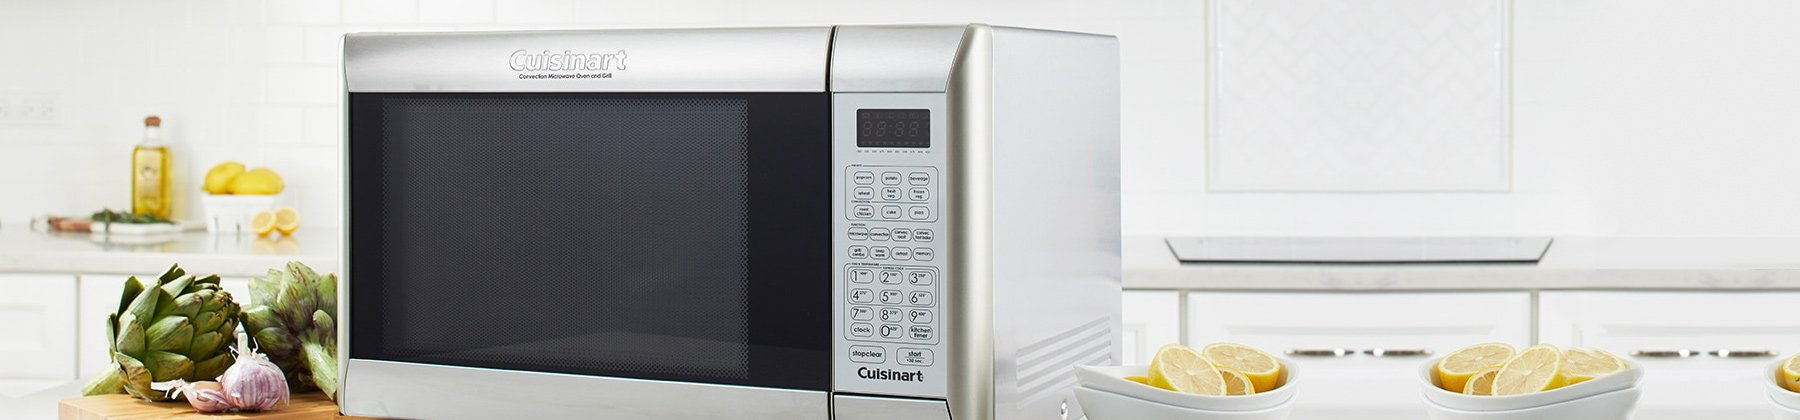 Photo of microwave ovens.